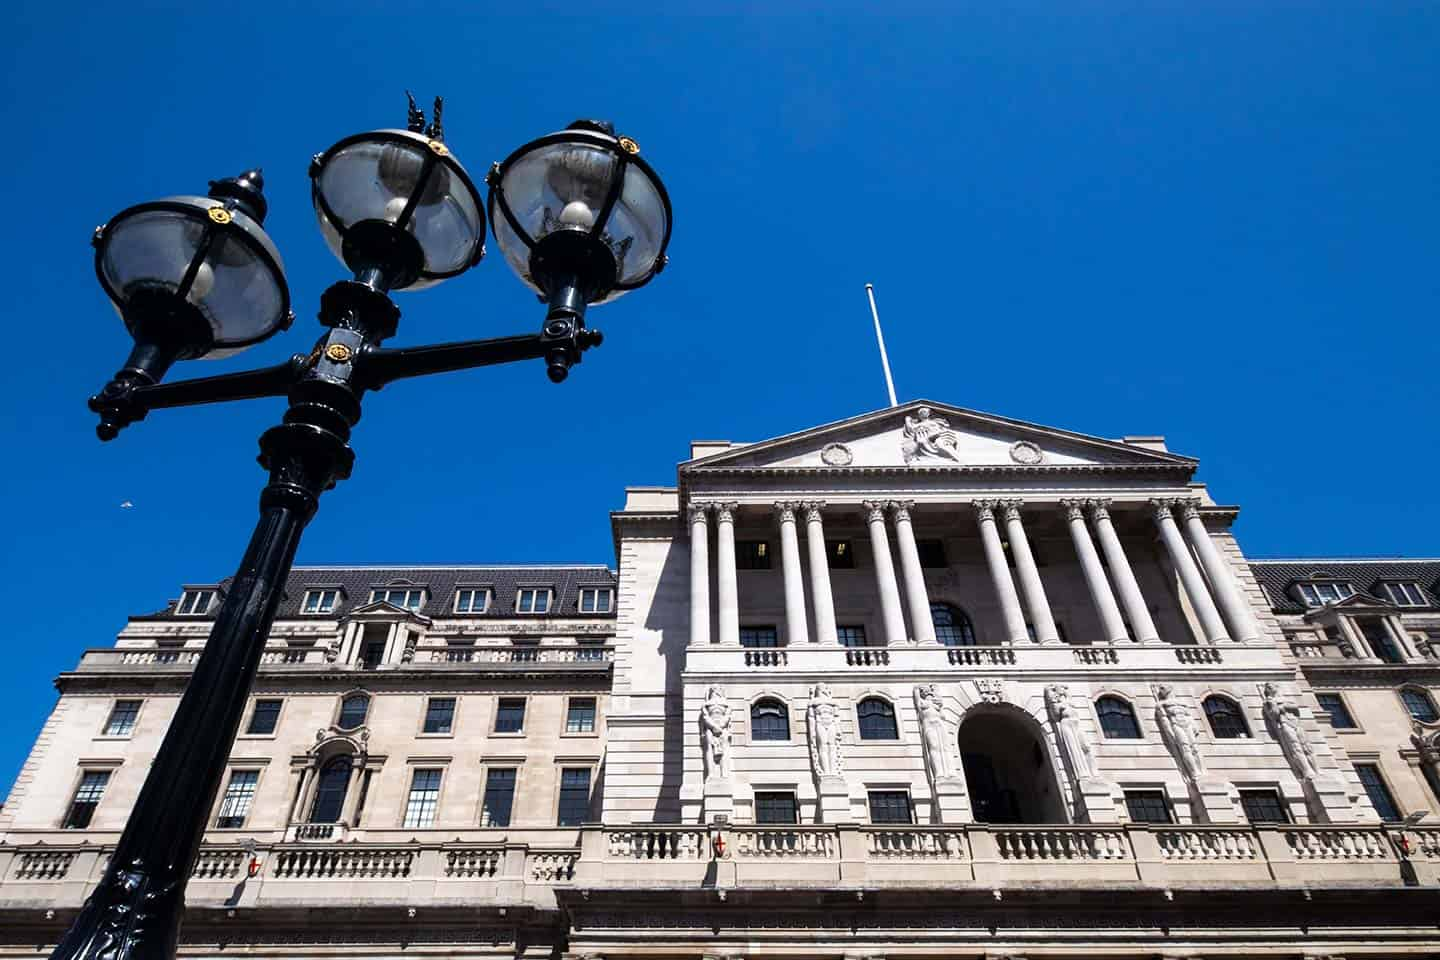 Image of the exterior of the Bank of England building in the City of London